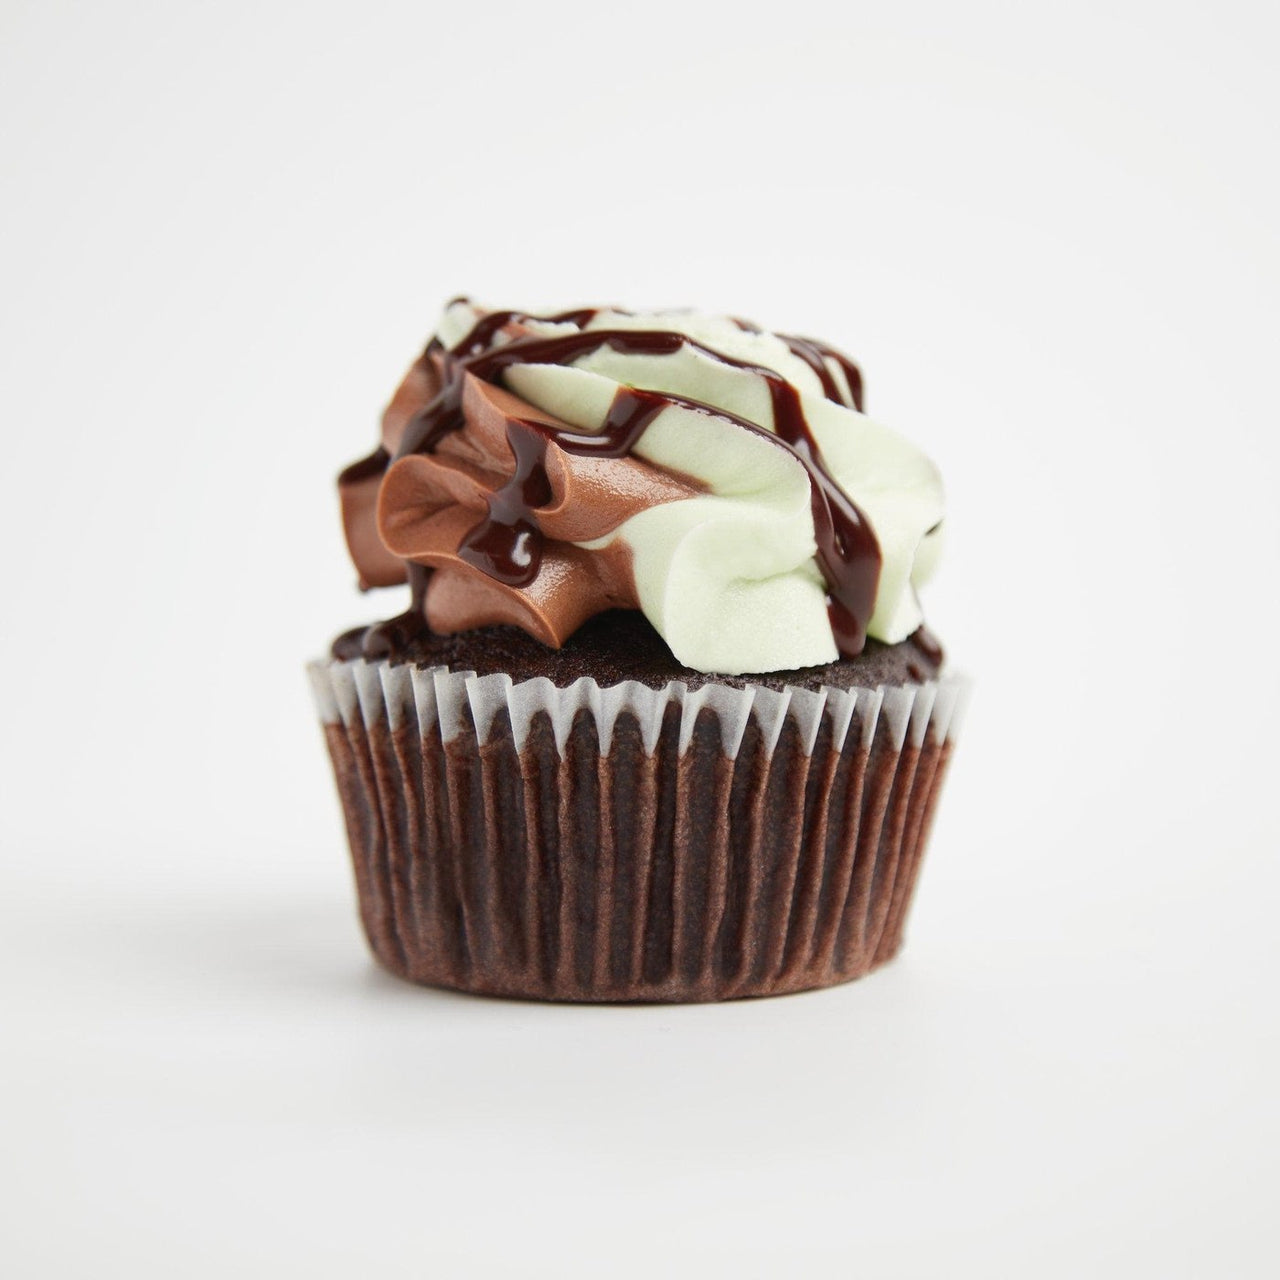 Mint Choc Chip Cupcakes by Crumbs & Doilies